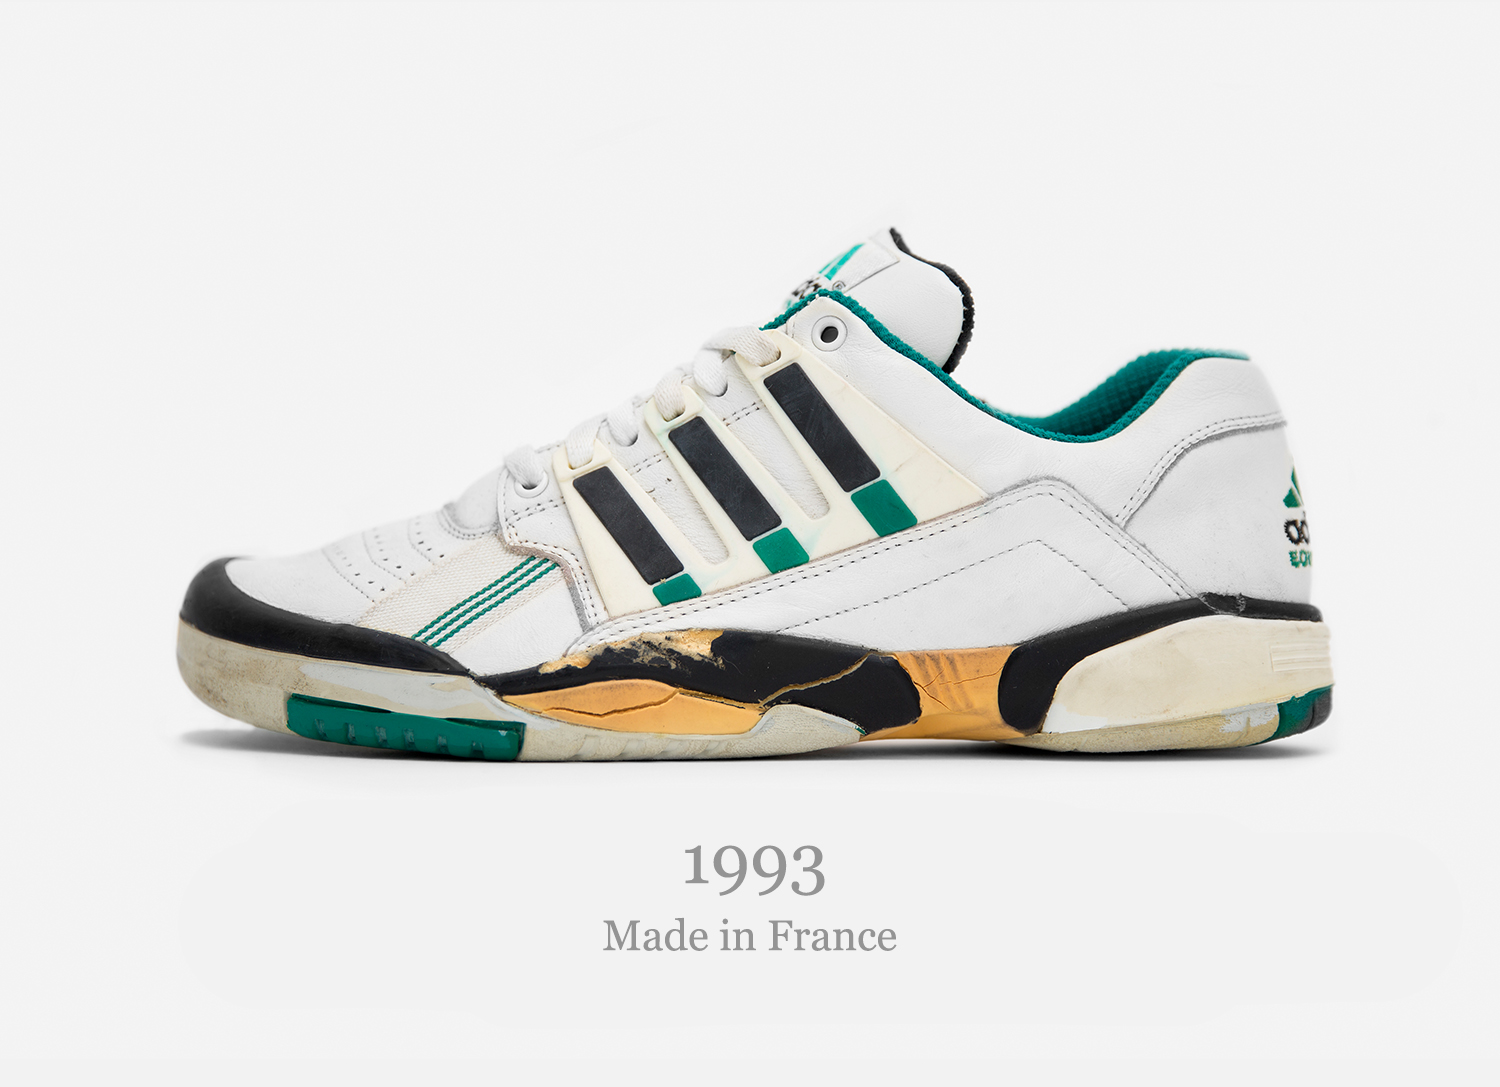 adidas_EQT_Equipment_Lock_up_size_hq_exclusive-8